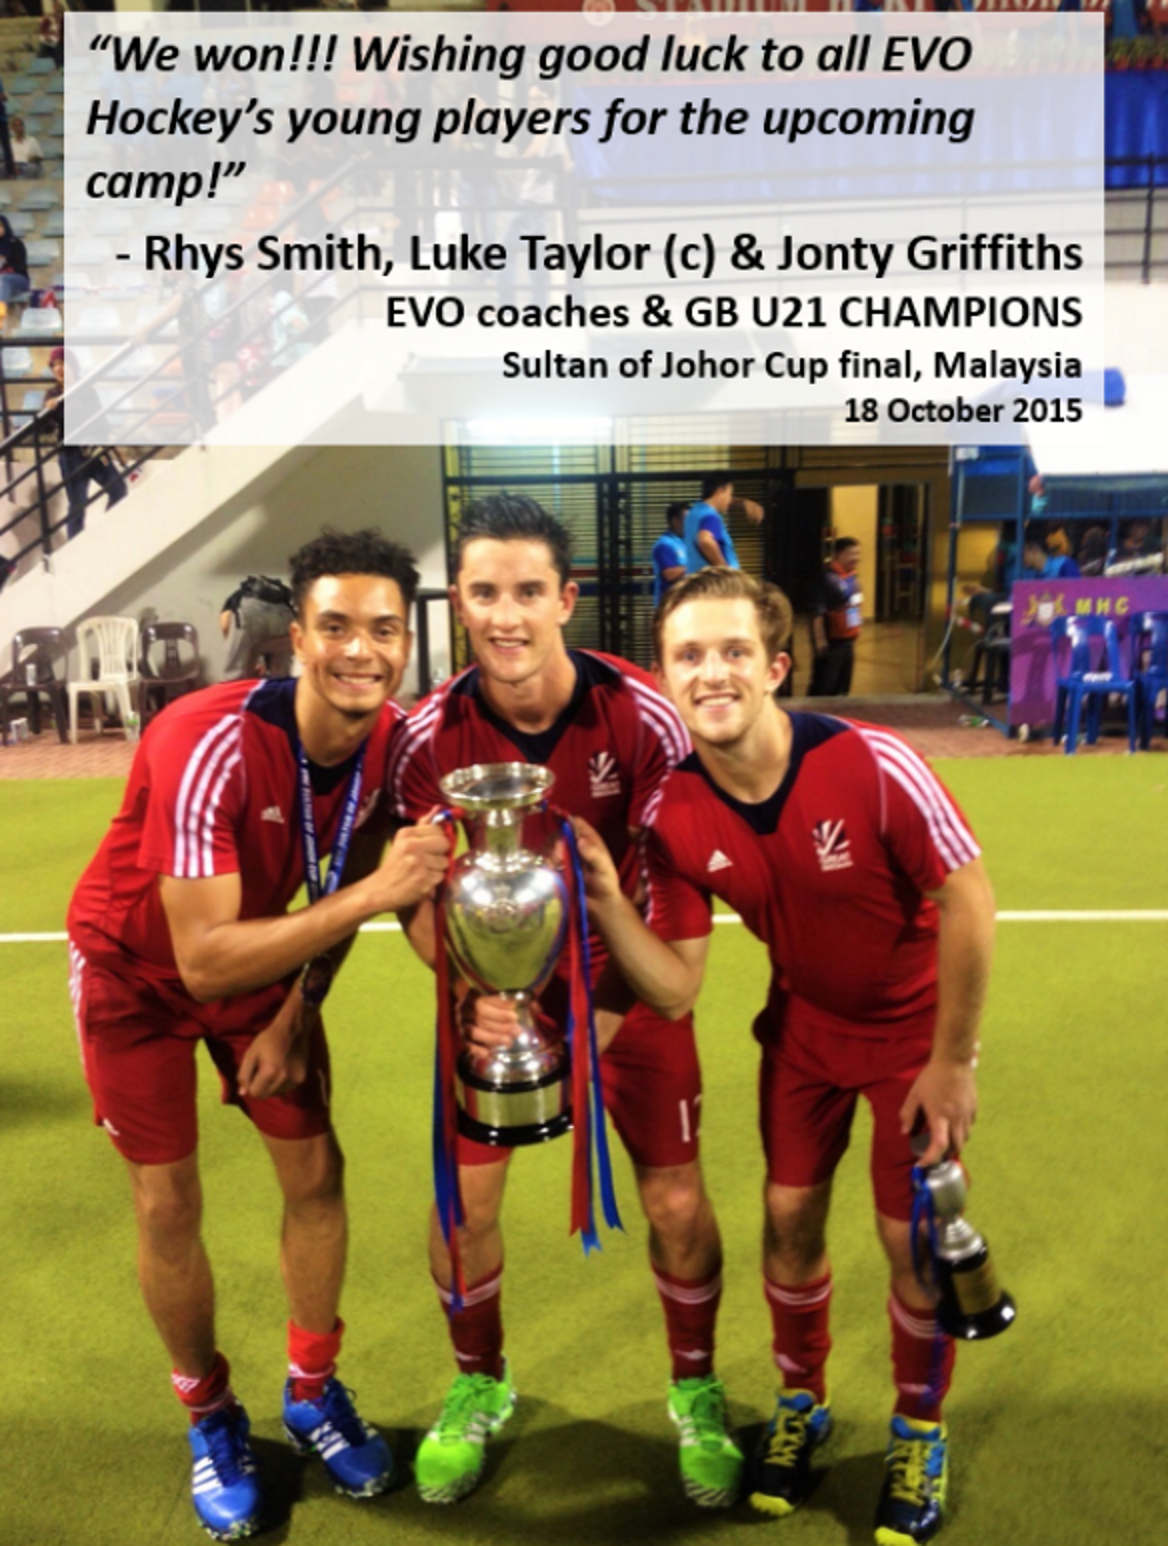 A personal message from Rhys, Luke & Jonty to the EVO Hockey players at our upcoming camp!